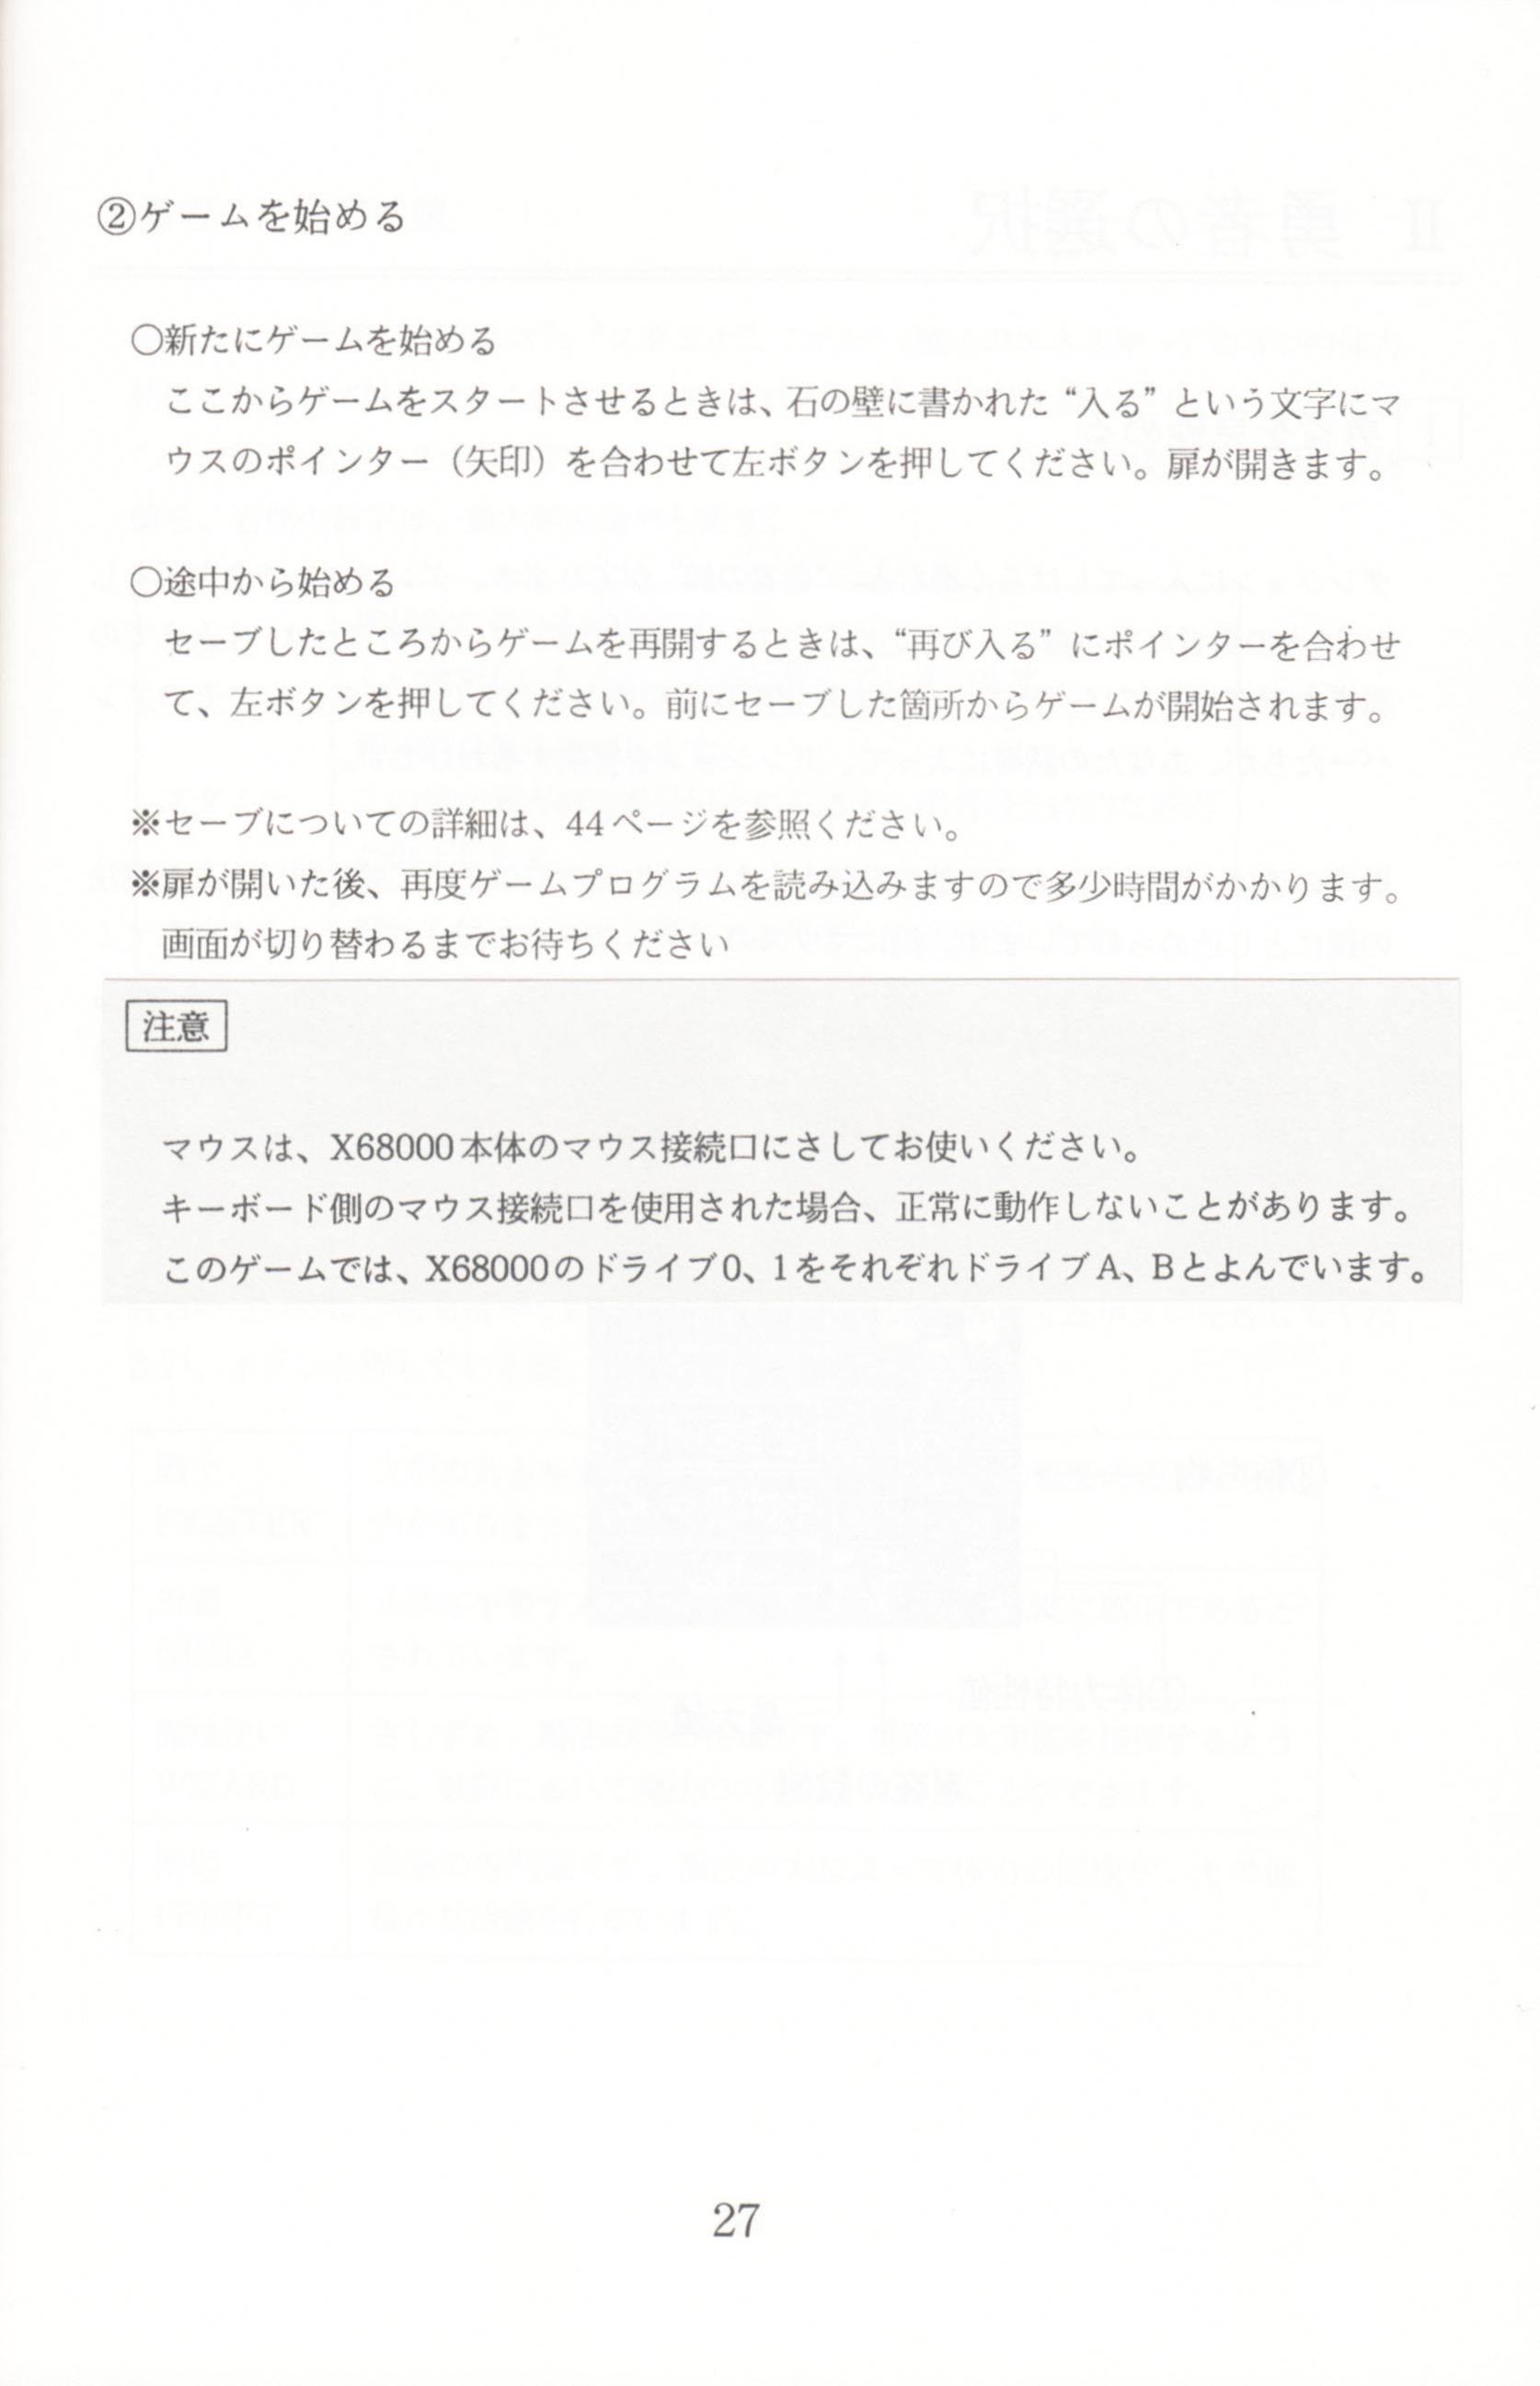 Game - Dungeon Master - JP - X68000 - Manual - Page 029 With Sticker - Scan